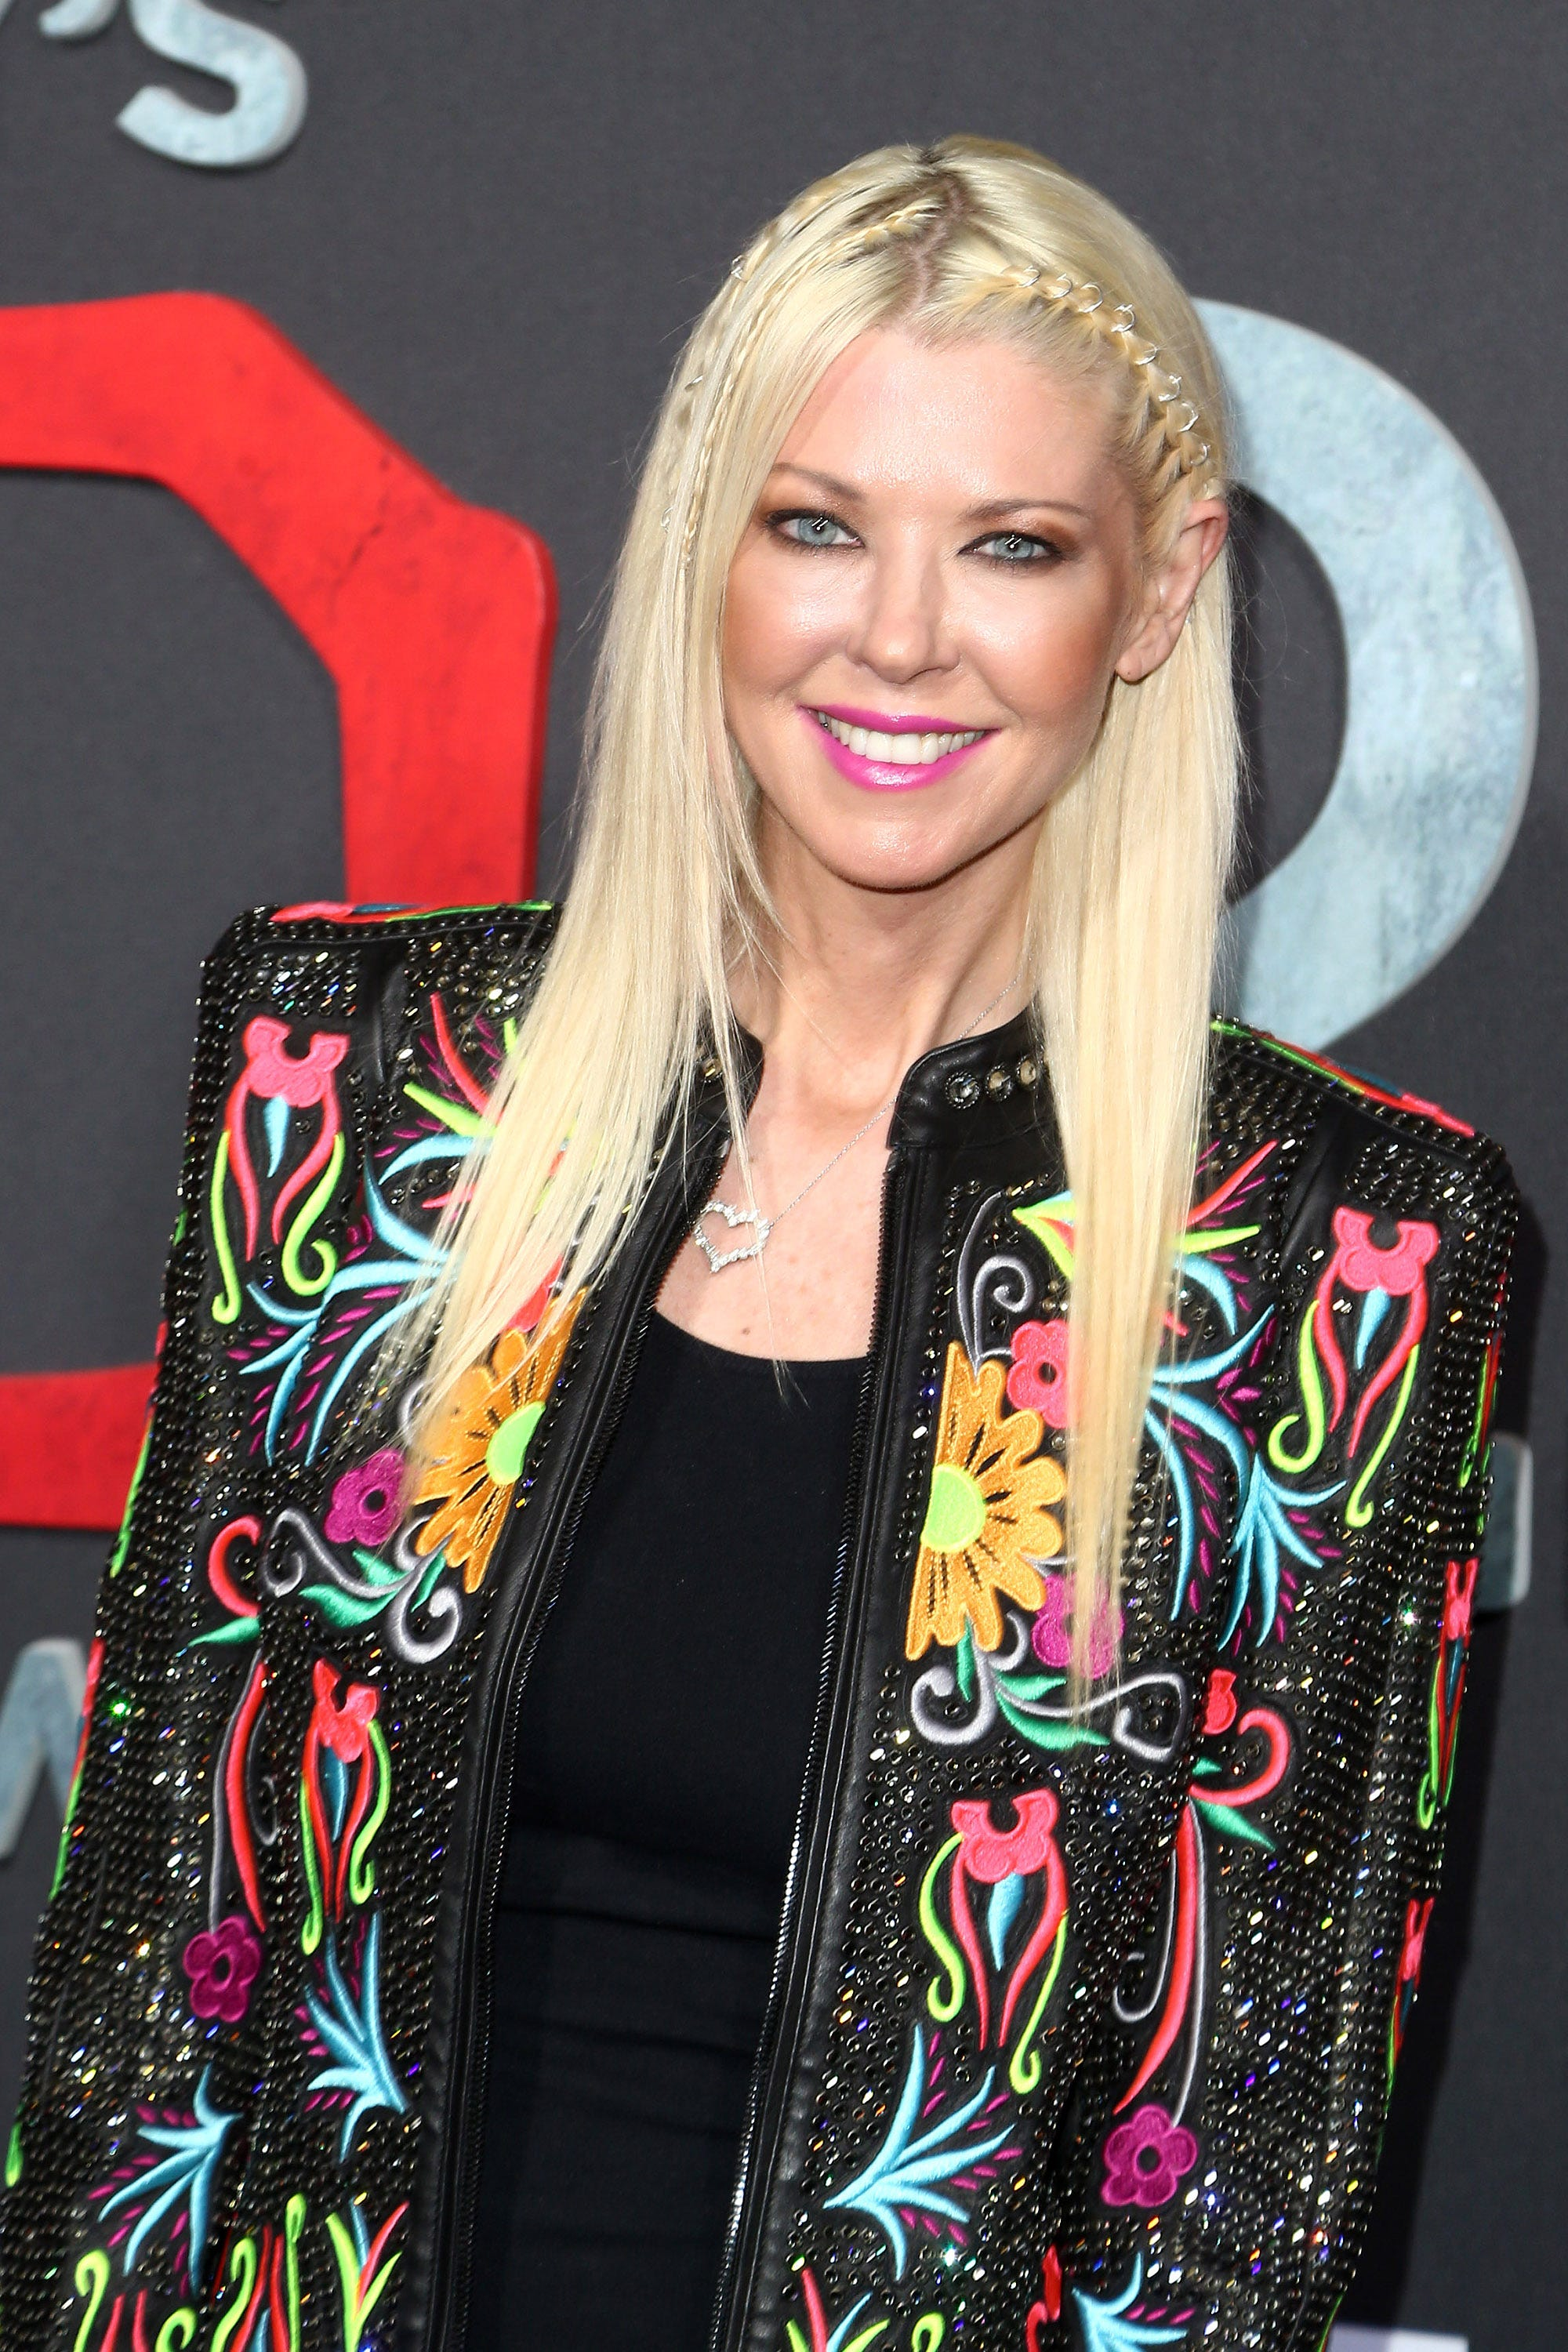 Tara Reid denies being kicked off a plane, says she de-boarded because of support dog